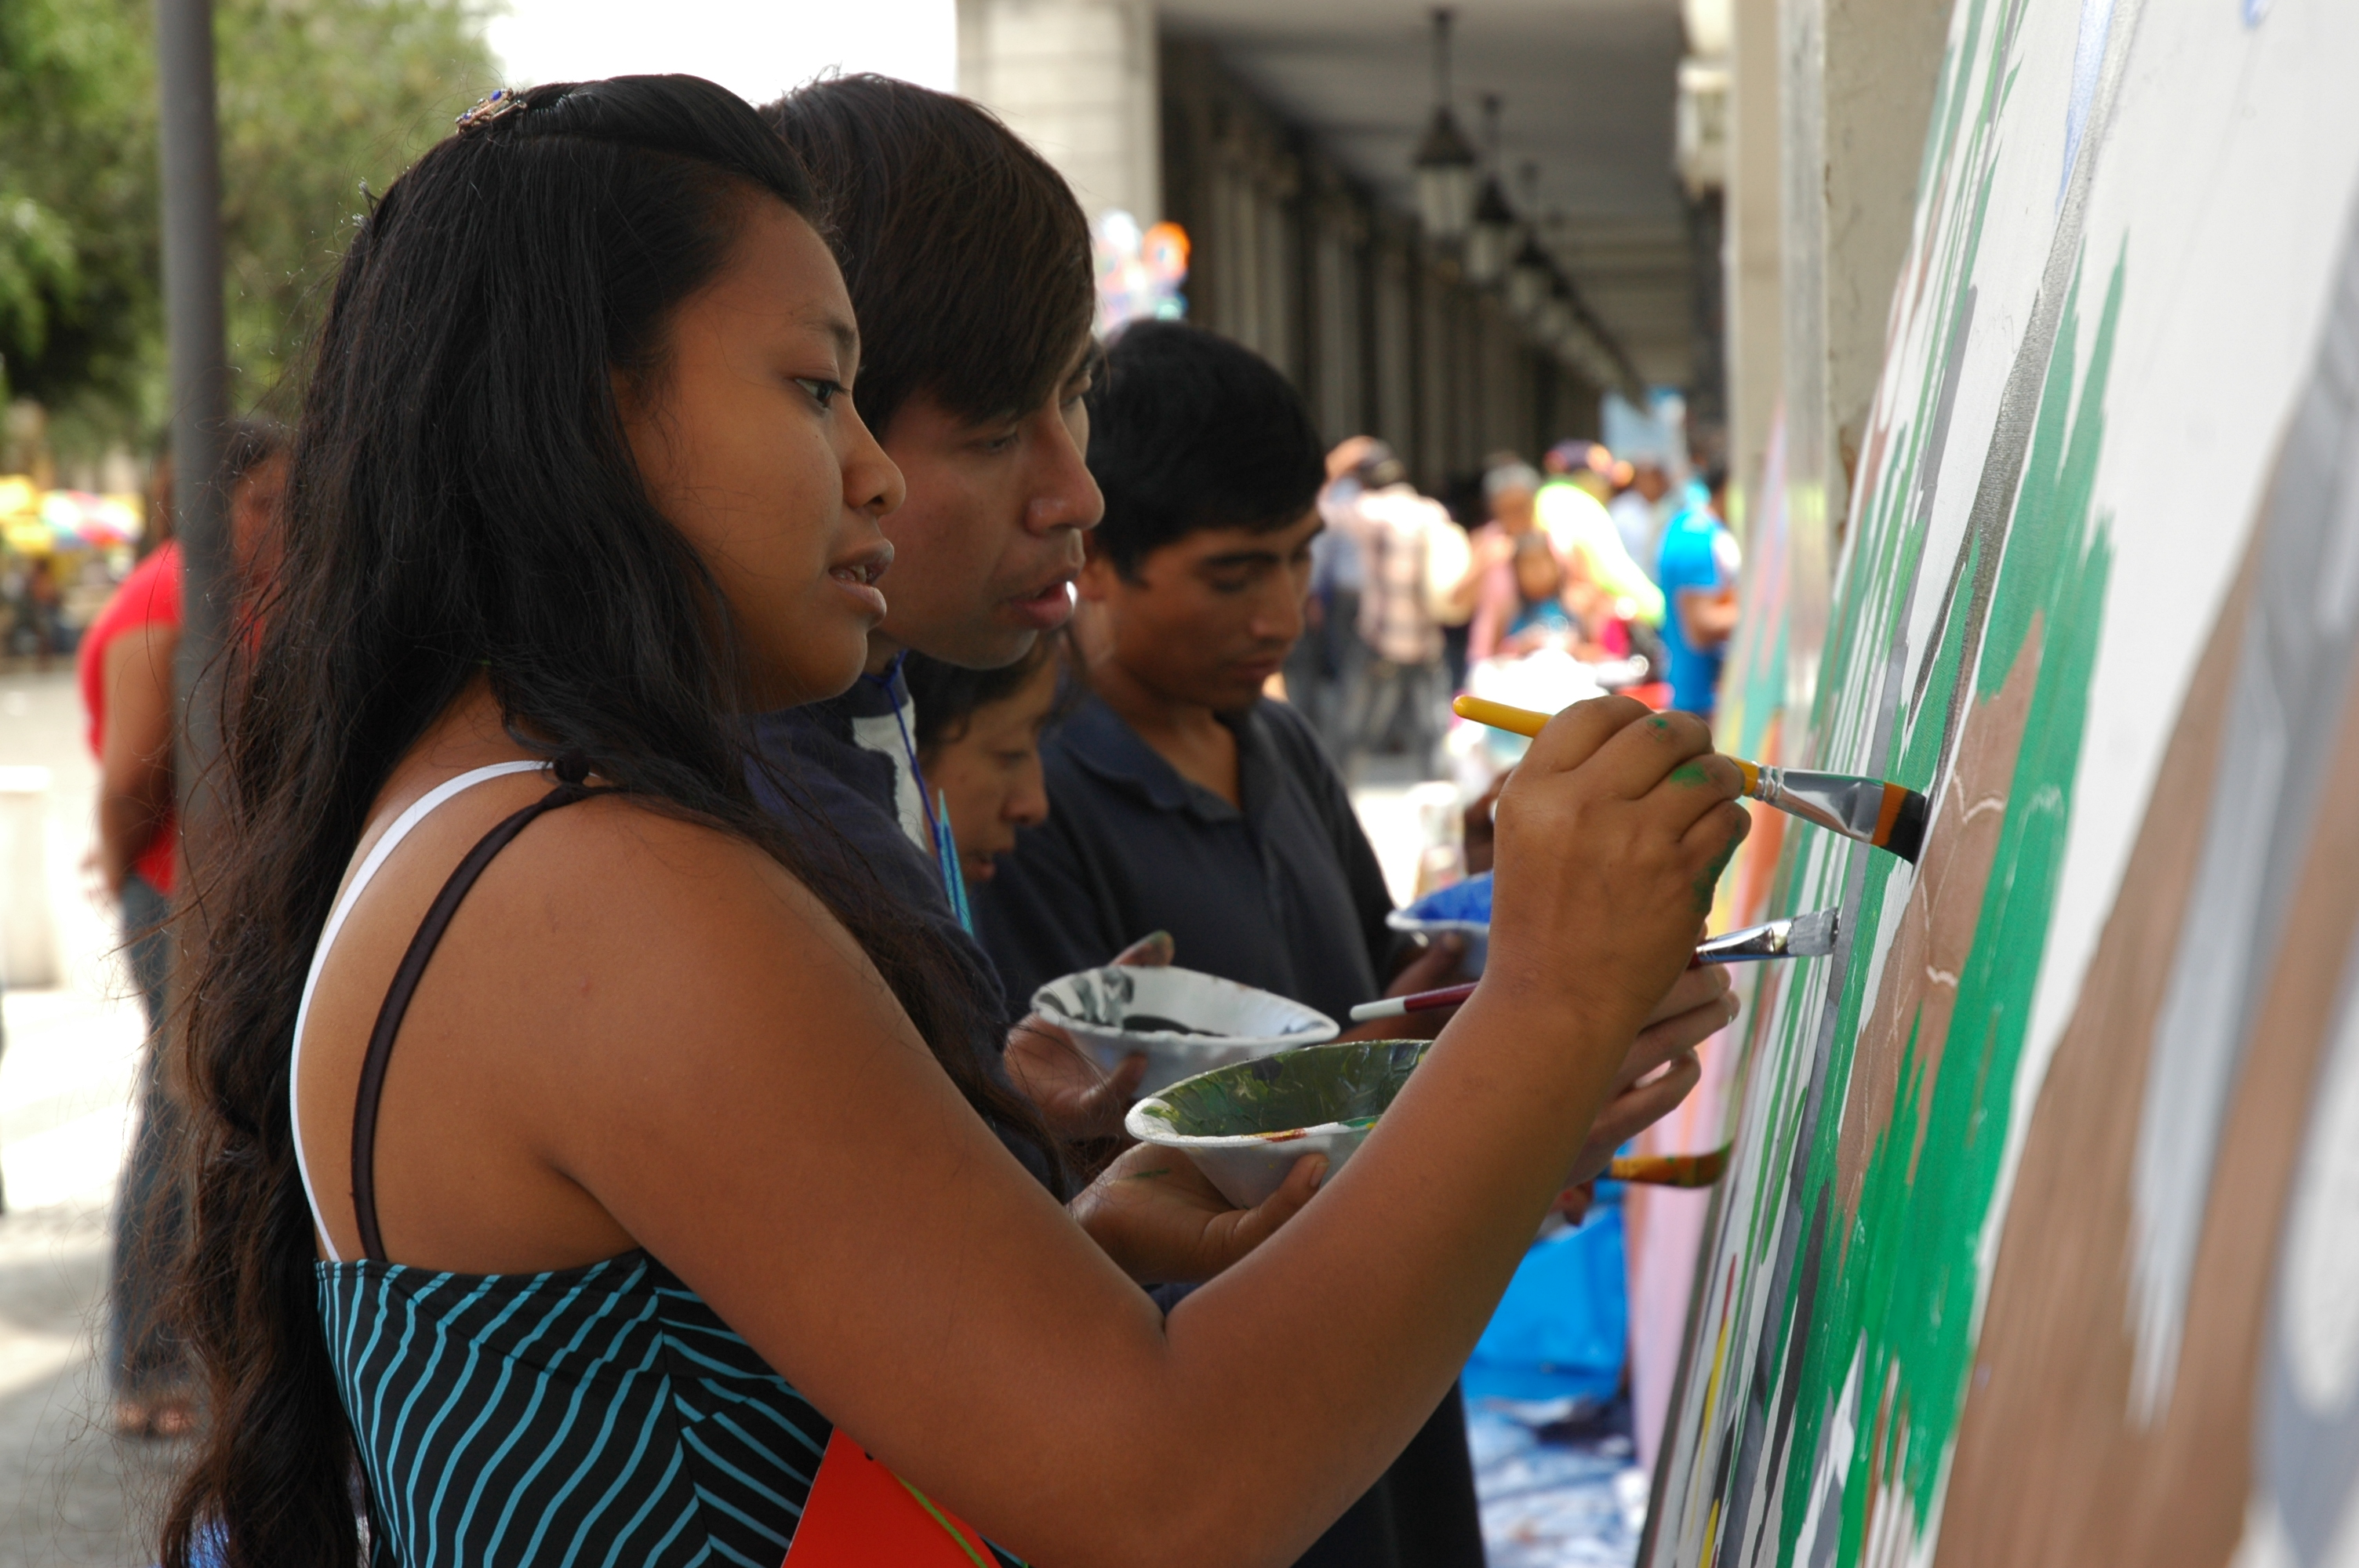 Celebration of the 2015  International Day of Peace, with the young people from an AFSC-supported Local Peace Network organizing a mural painting event along one of Guatemala Cityâs busiest streets.